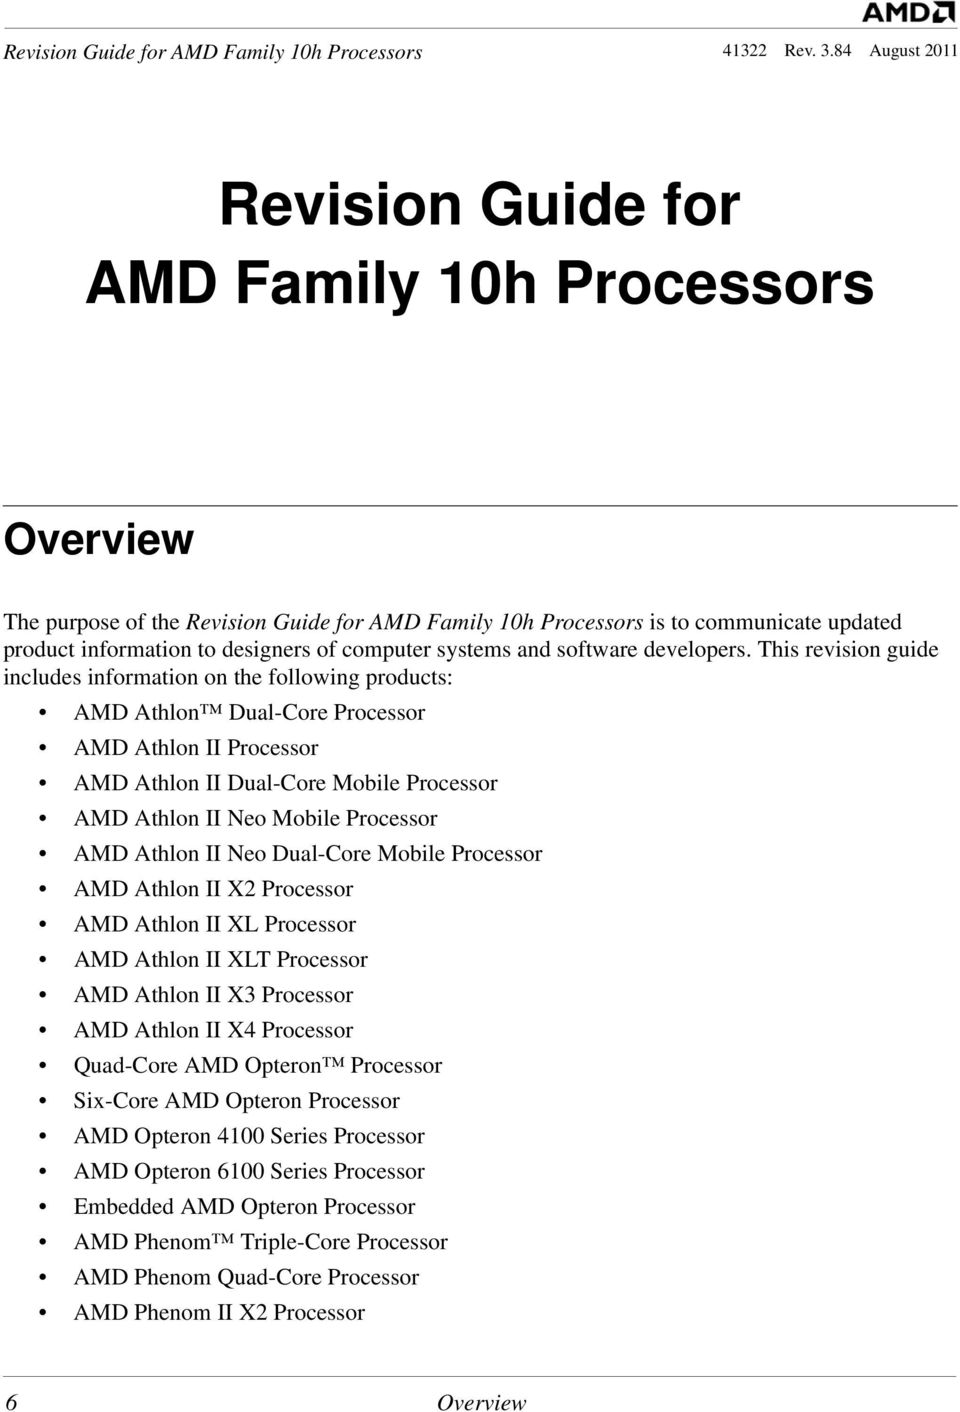 Revision Guide for AMD Family 10h Processors - PDF